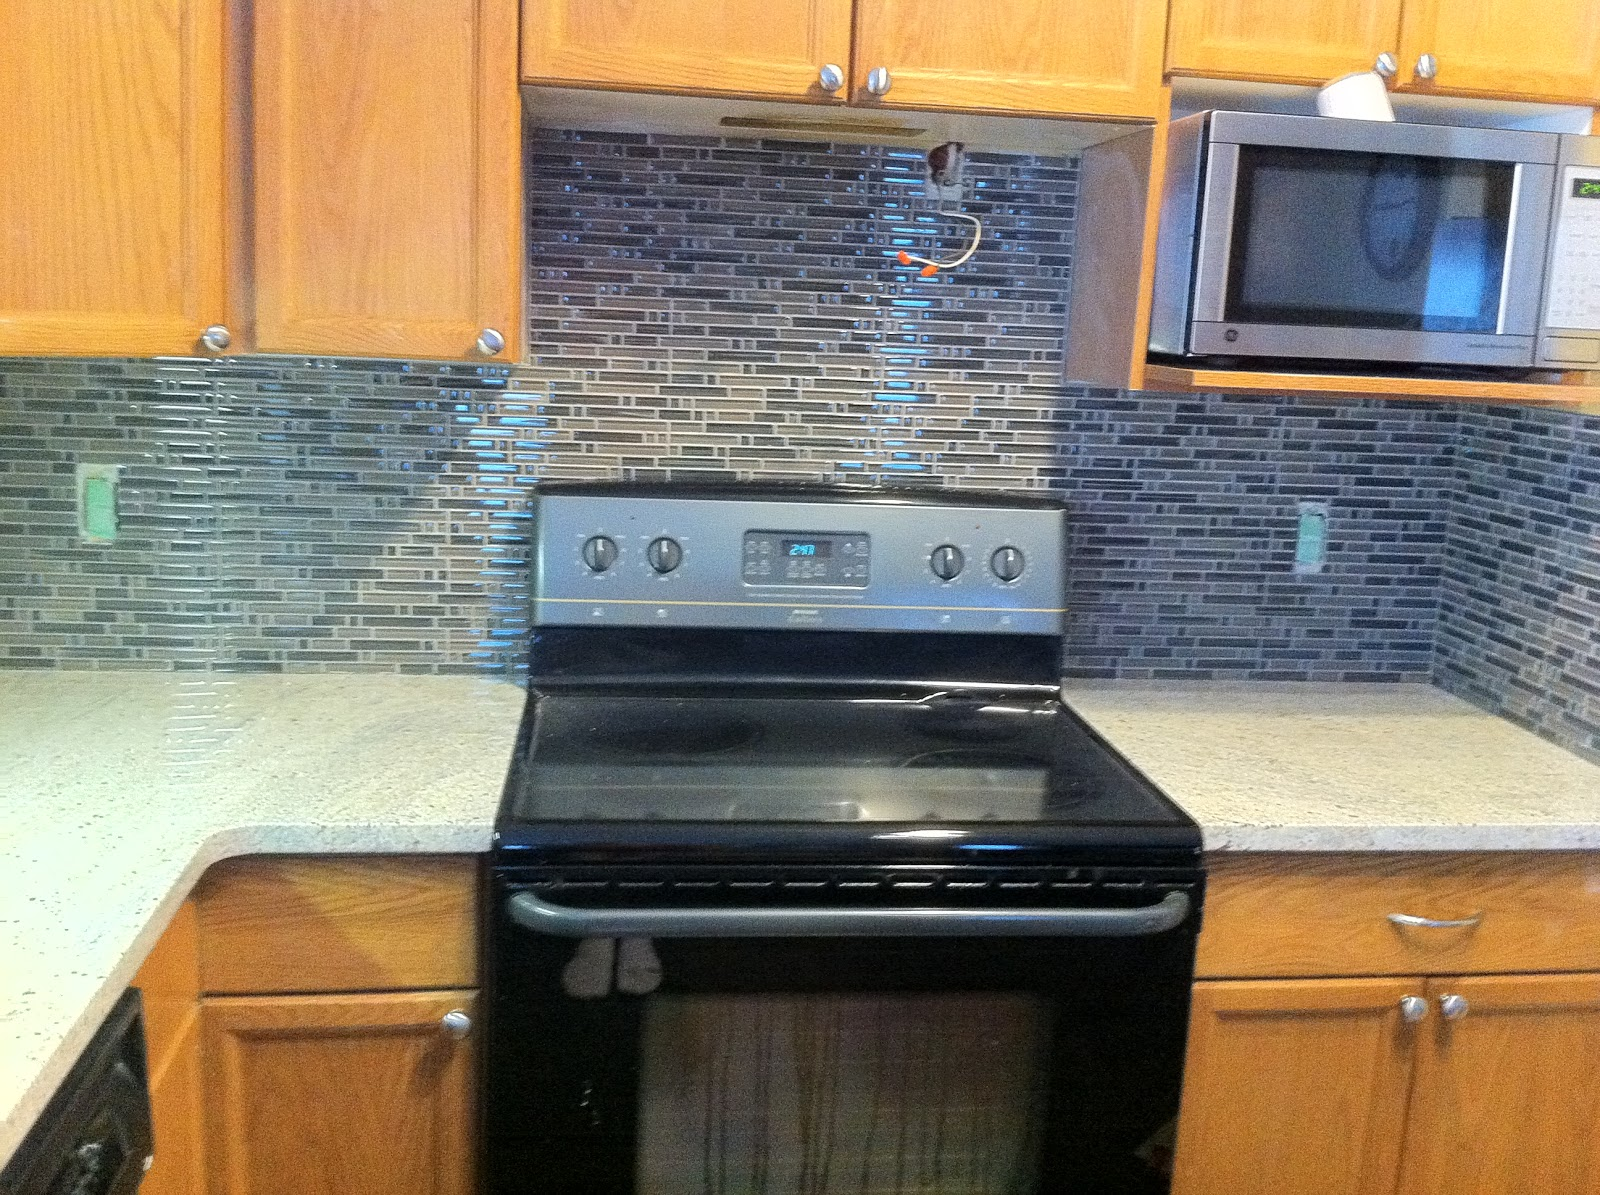 Blue Tile Backsplash Kitchen Mixer Machine Ribbon Studio New